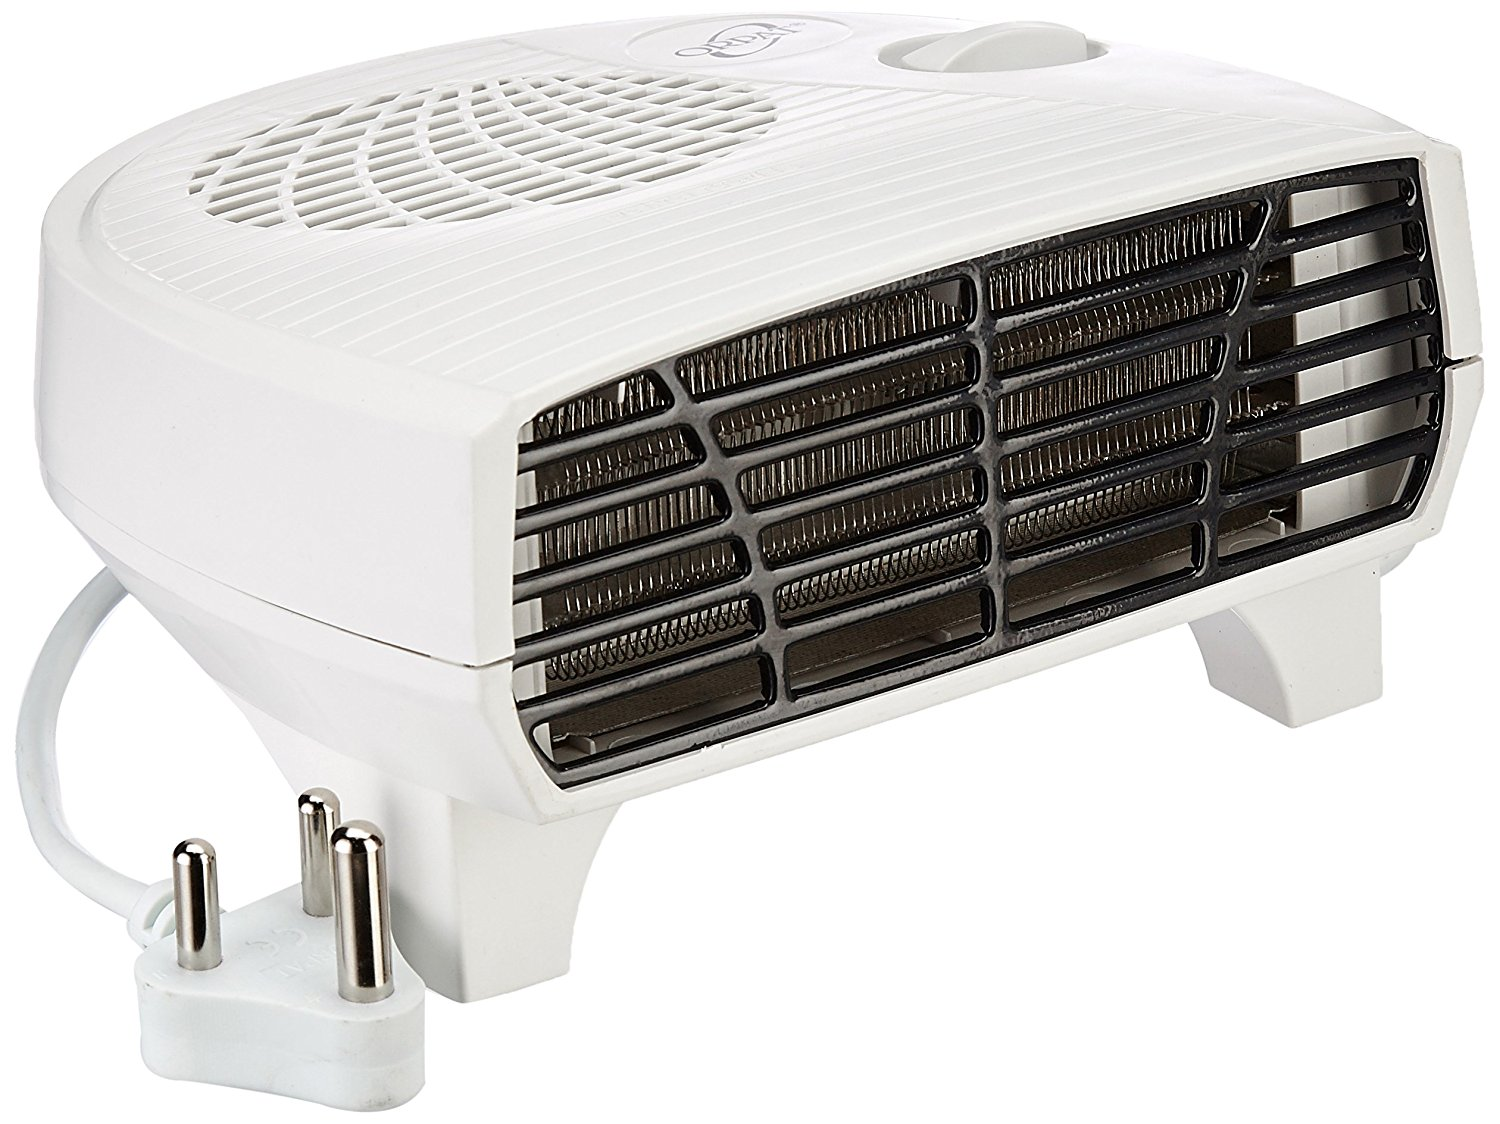 Orpat OEH 2000 Watt Fan Heater